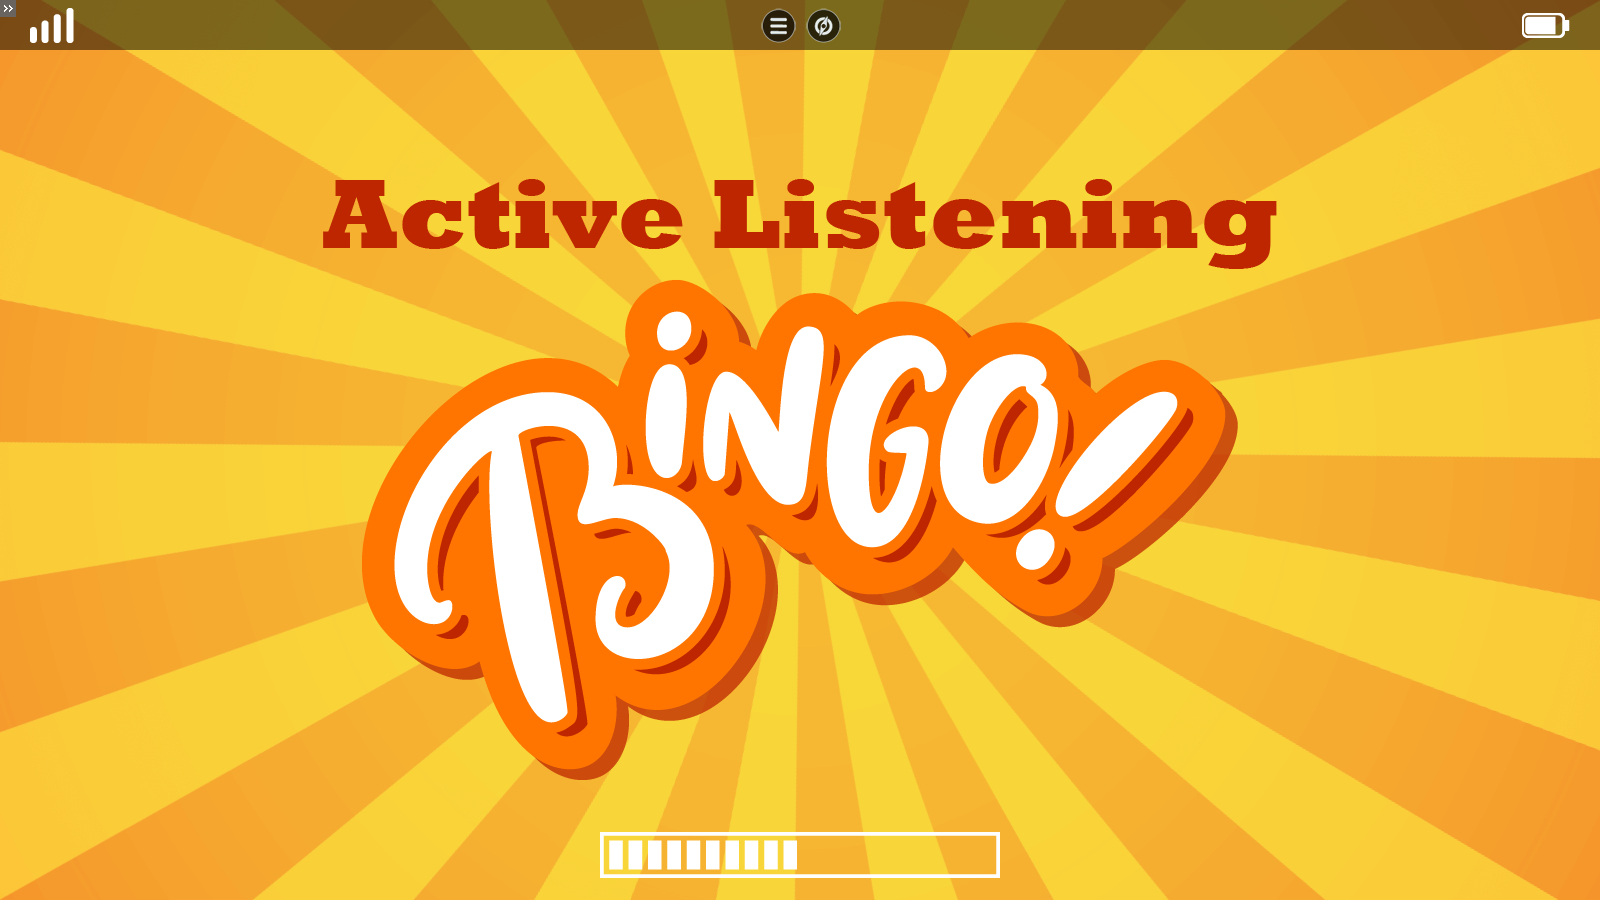 a title slide introducing a bingo game